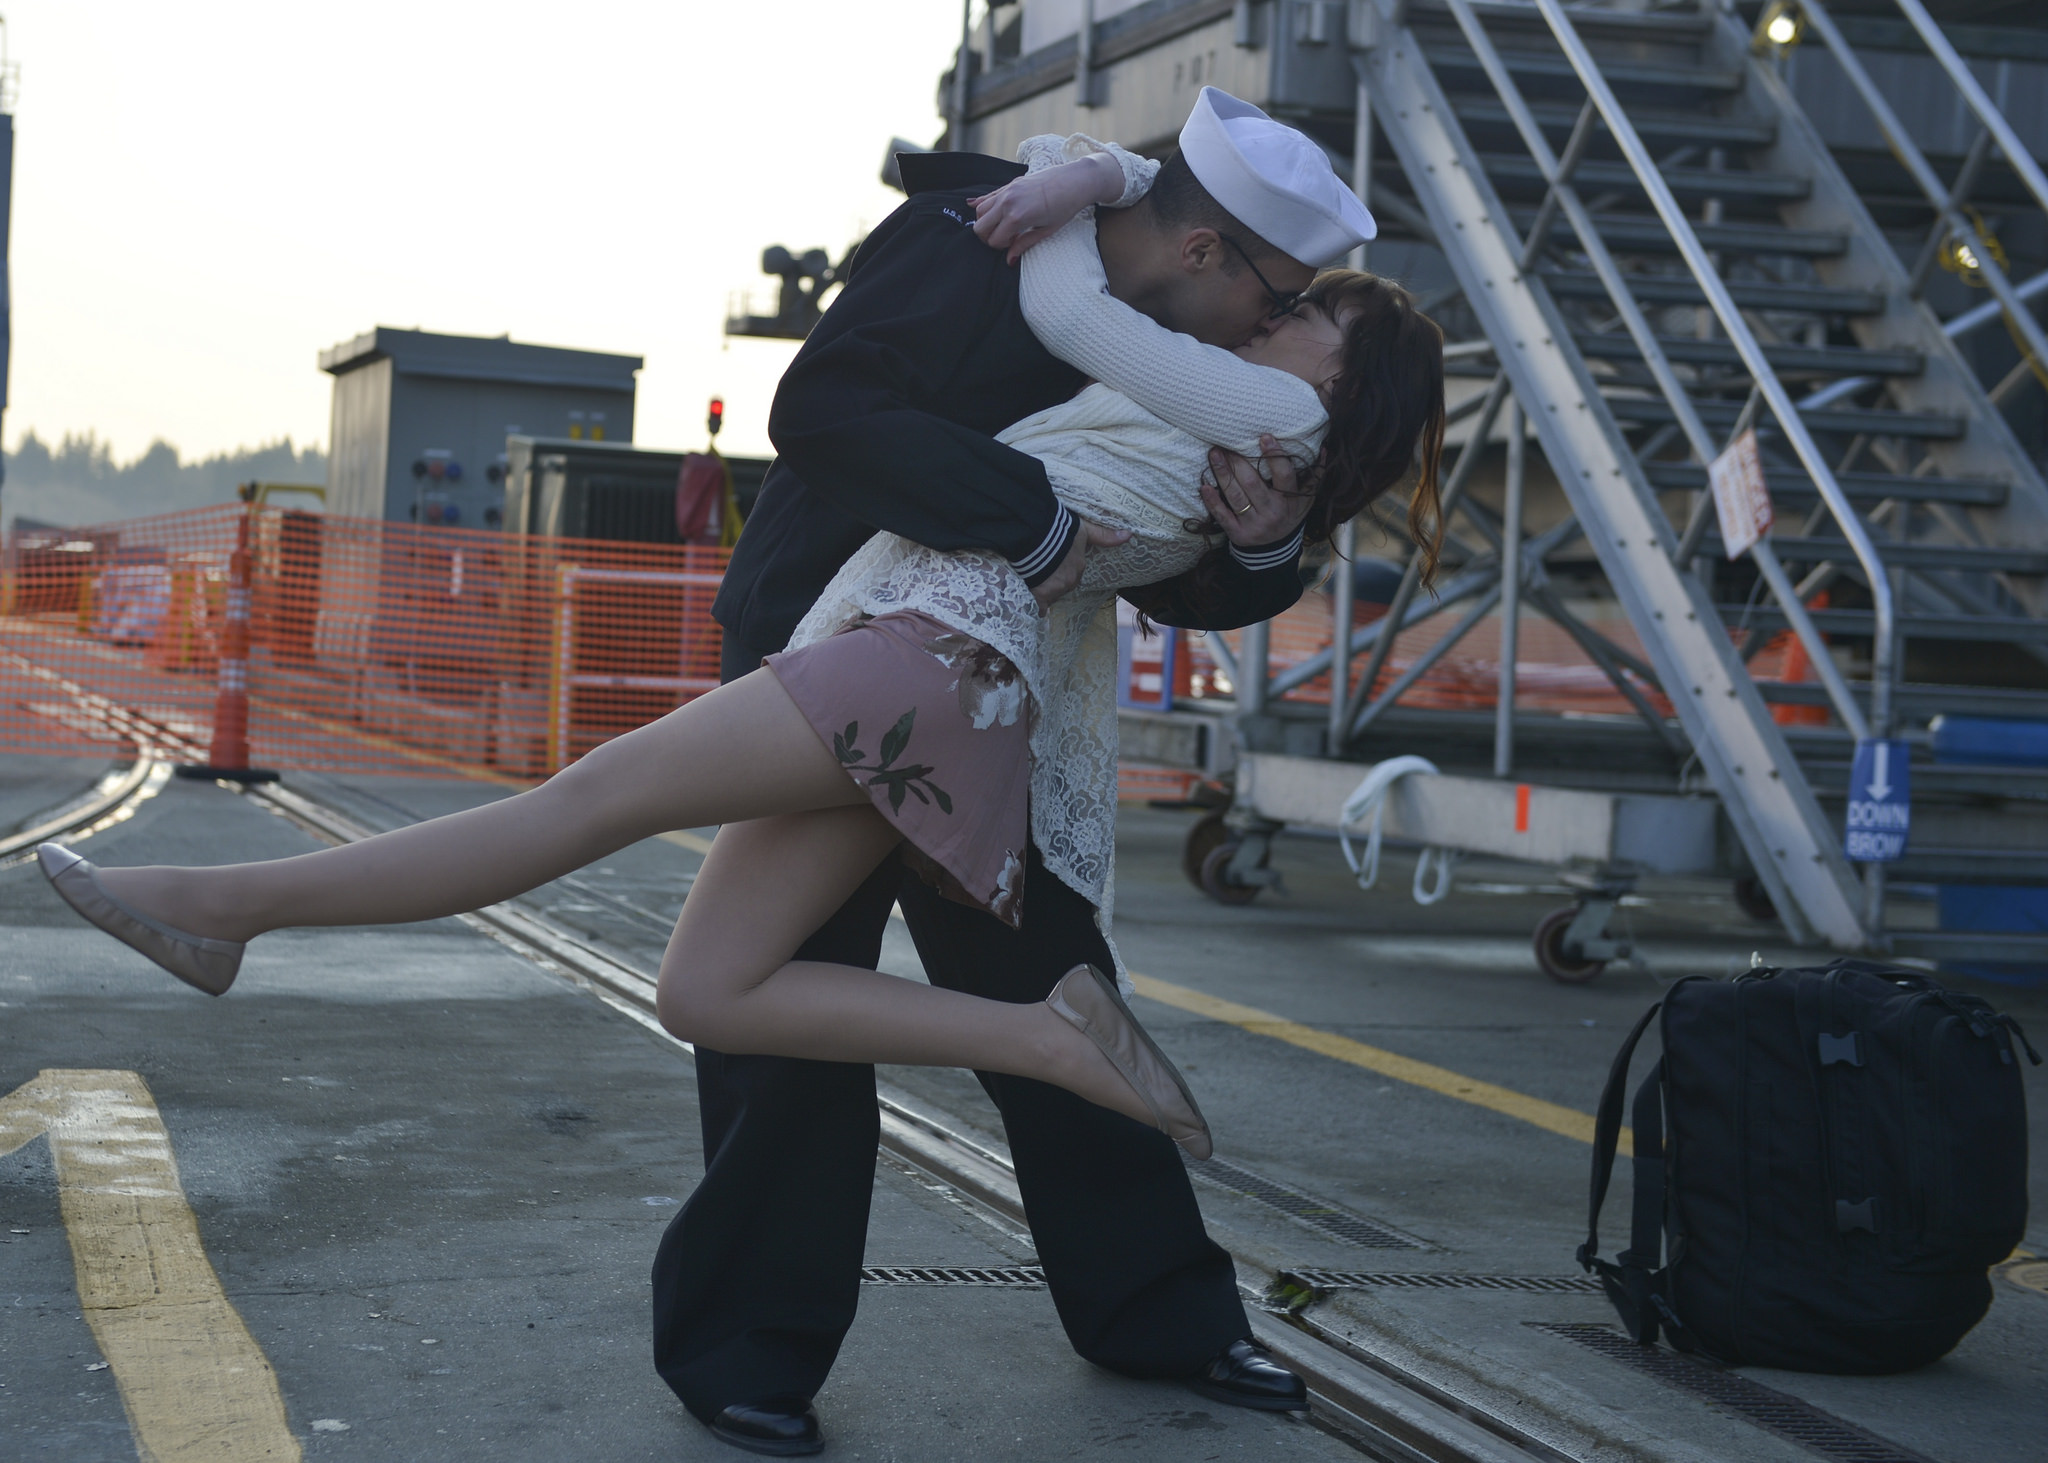 U.S. Navy Logistics Specialist 3rd Class Michael Zegarra, assigned to the aircraft carrier USS Nimitz (CVN 68), kisses his wife on the pier during the ship's homecoming in Bremerton, Wash, Dec. 10, 2017. The Nimitz Carrier Strike Group is returning from a regularly scheduled deployment from the Indo-Asia-Pacific region and Arabian Gulf. (MC3 Ian Kinkead/Navy)